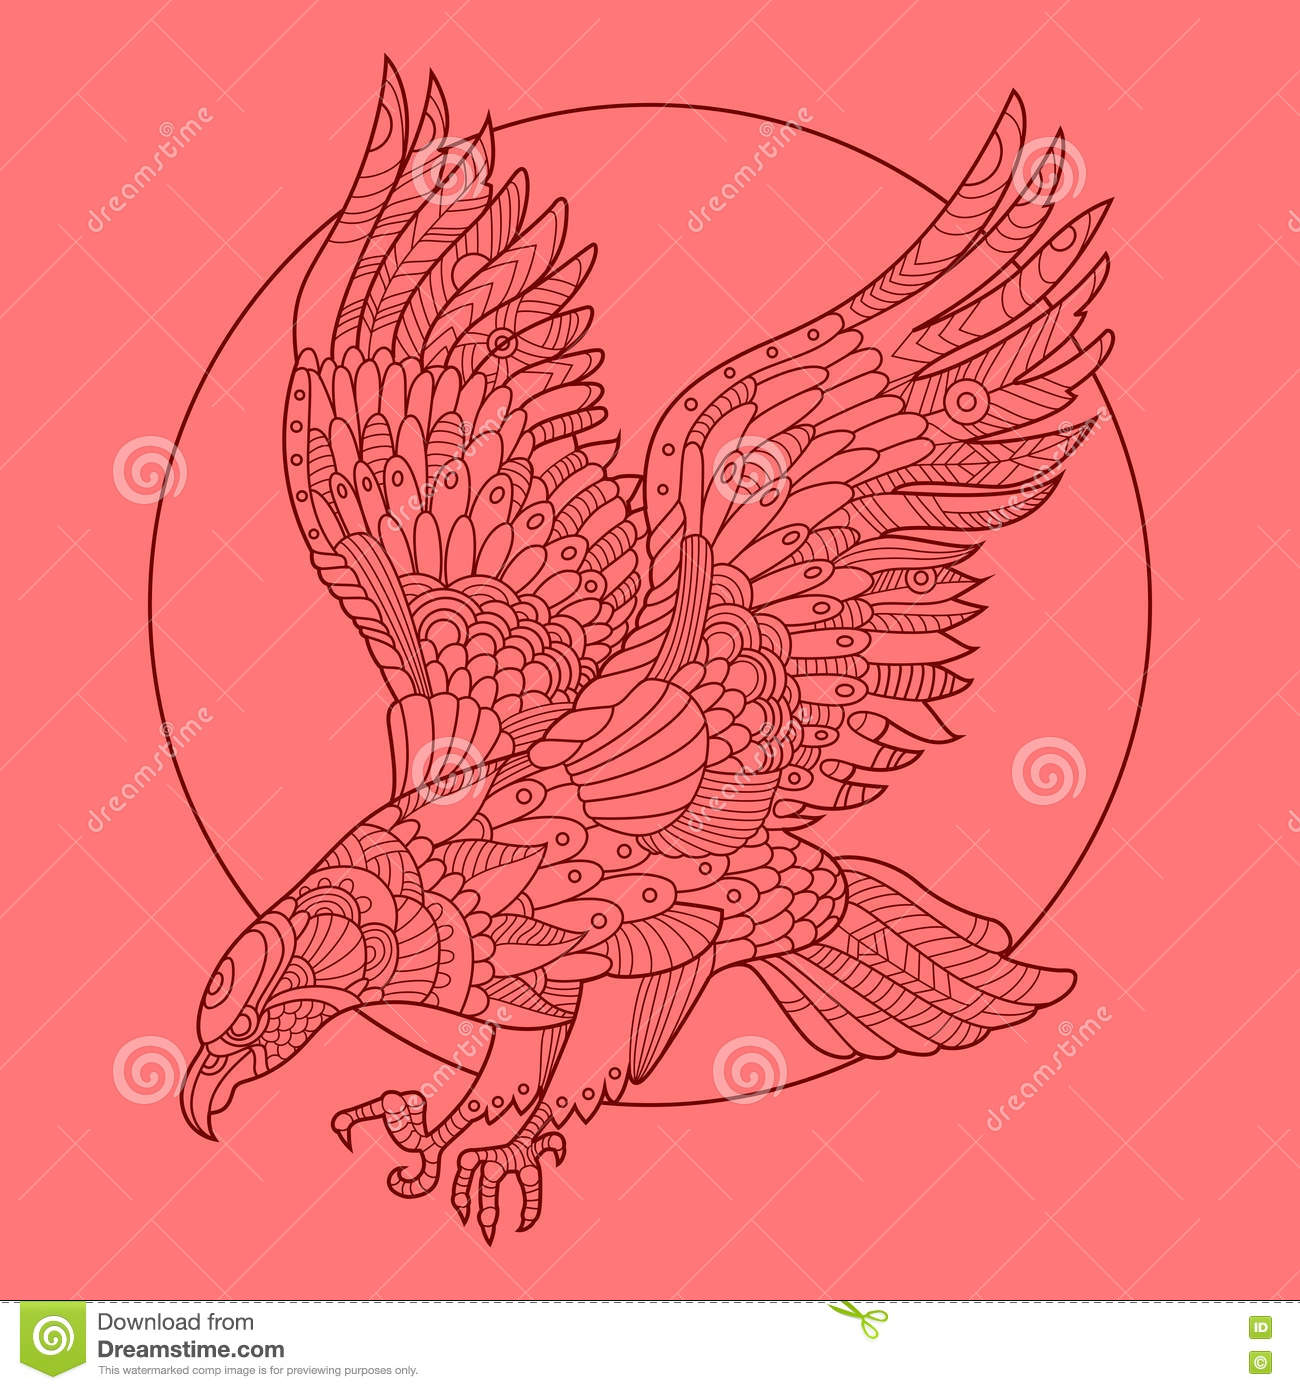 eagle bird coloring book adults vector illustration anti stress adult tattoo stencil zentangle style black